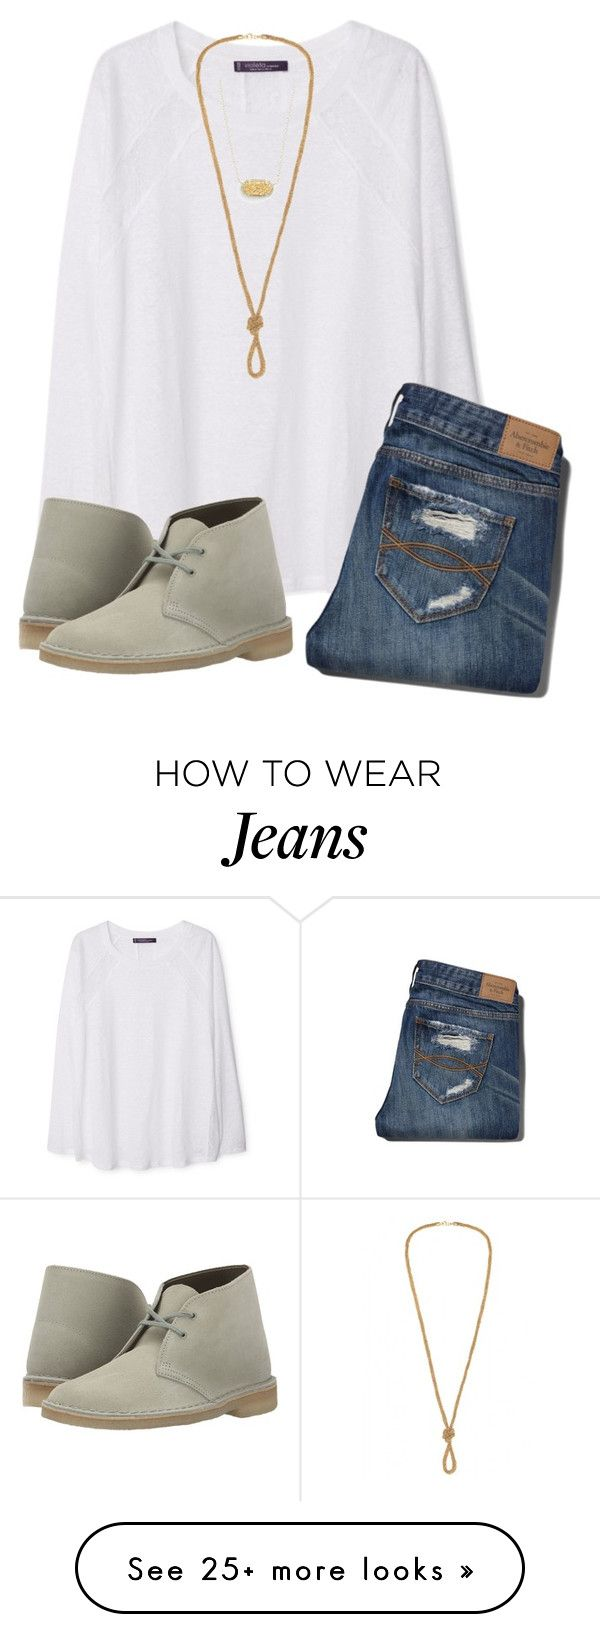 """#188 I'm Distressed as my Jeans"" by ultimateprep on Polyvore featuring Violeta by Mango, Abercrombie & Fitch, Kendra Scott, Clarks, women's clothing, women, female, woman, misses and juniors"